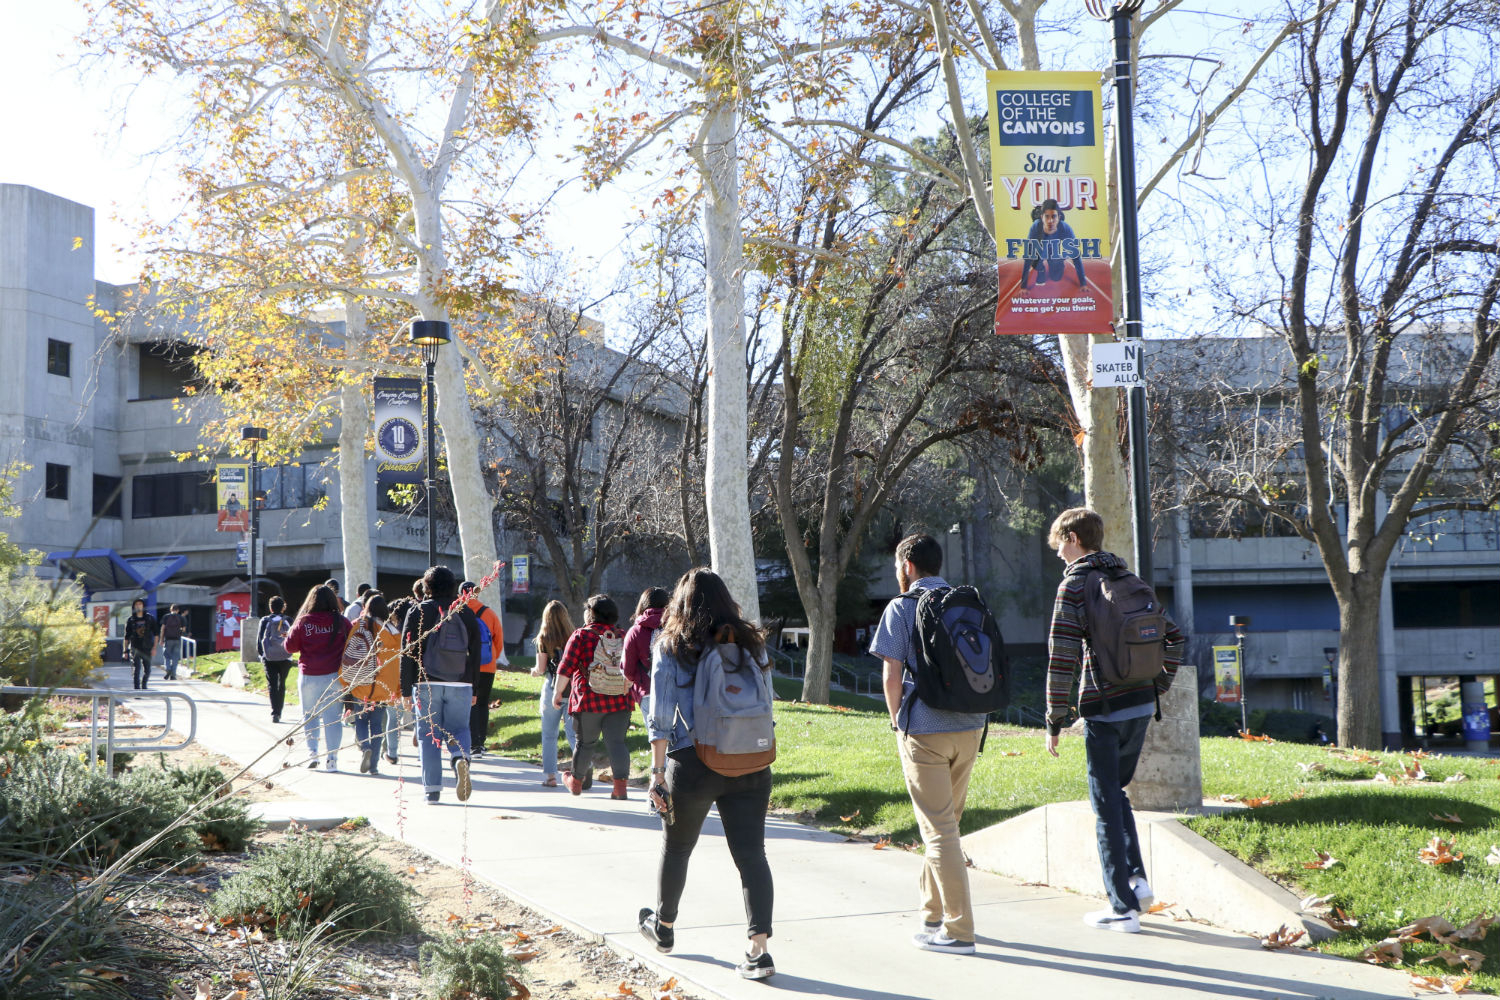 Scv News | Coc Adds Short Term Classes To Spring 2019 With Regard To When Does The Spring Semester Start At College Of The Canyons